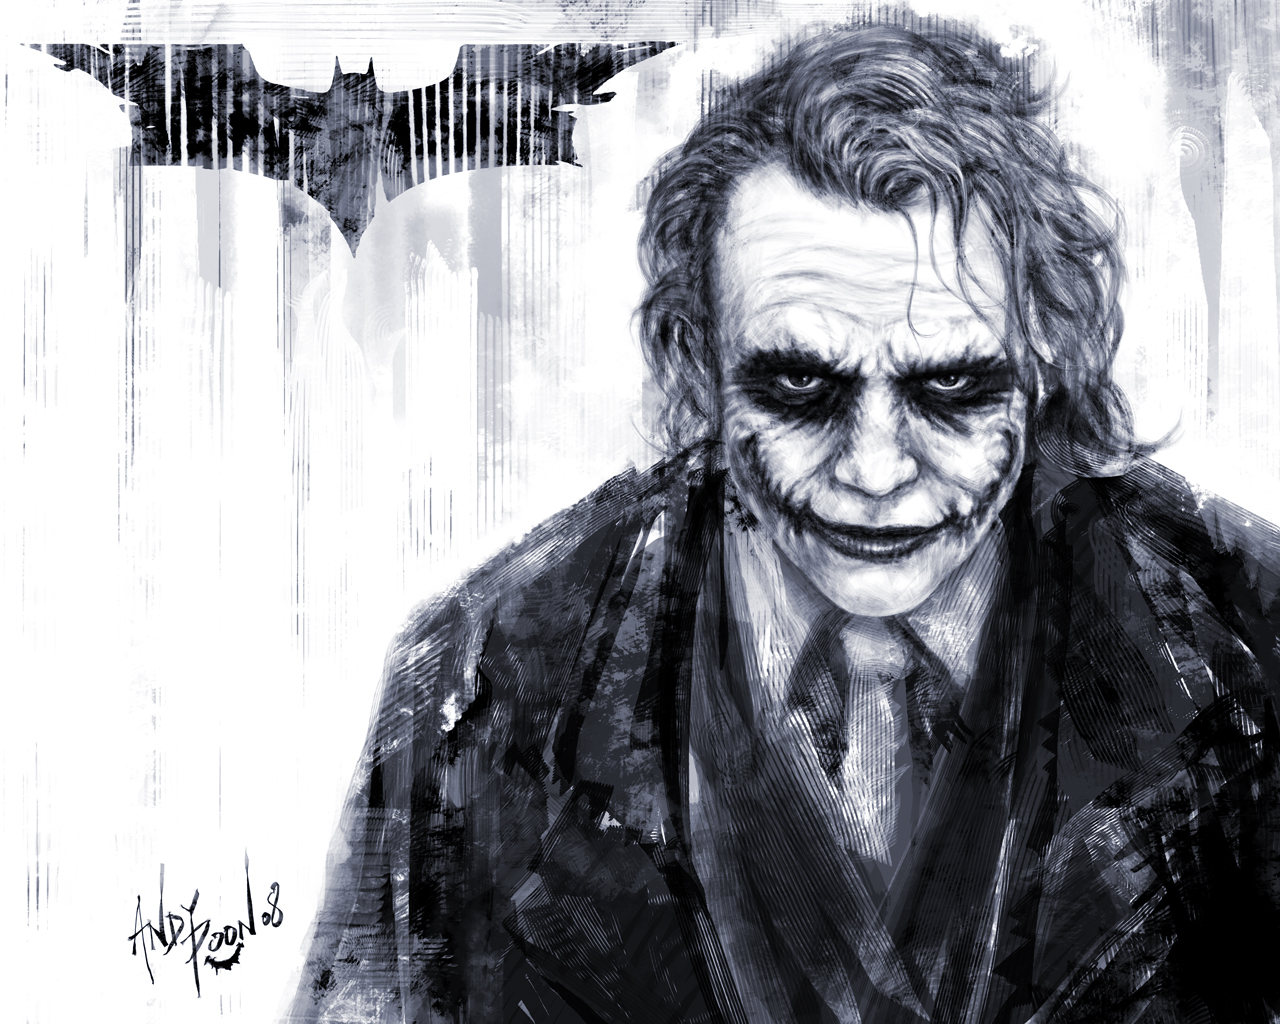 HDMOU: TOP 20 THE JOKER WALLPAPERS IN HD